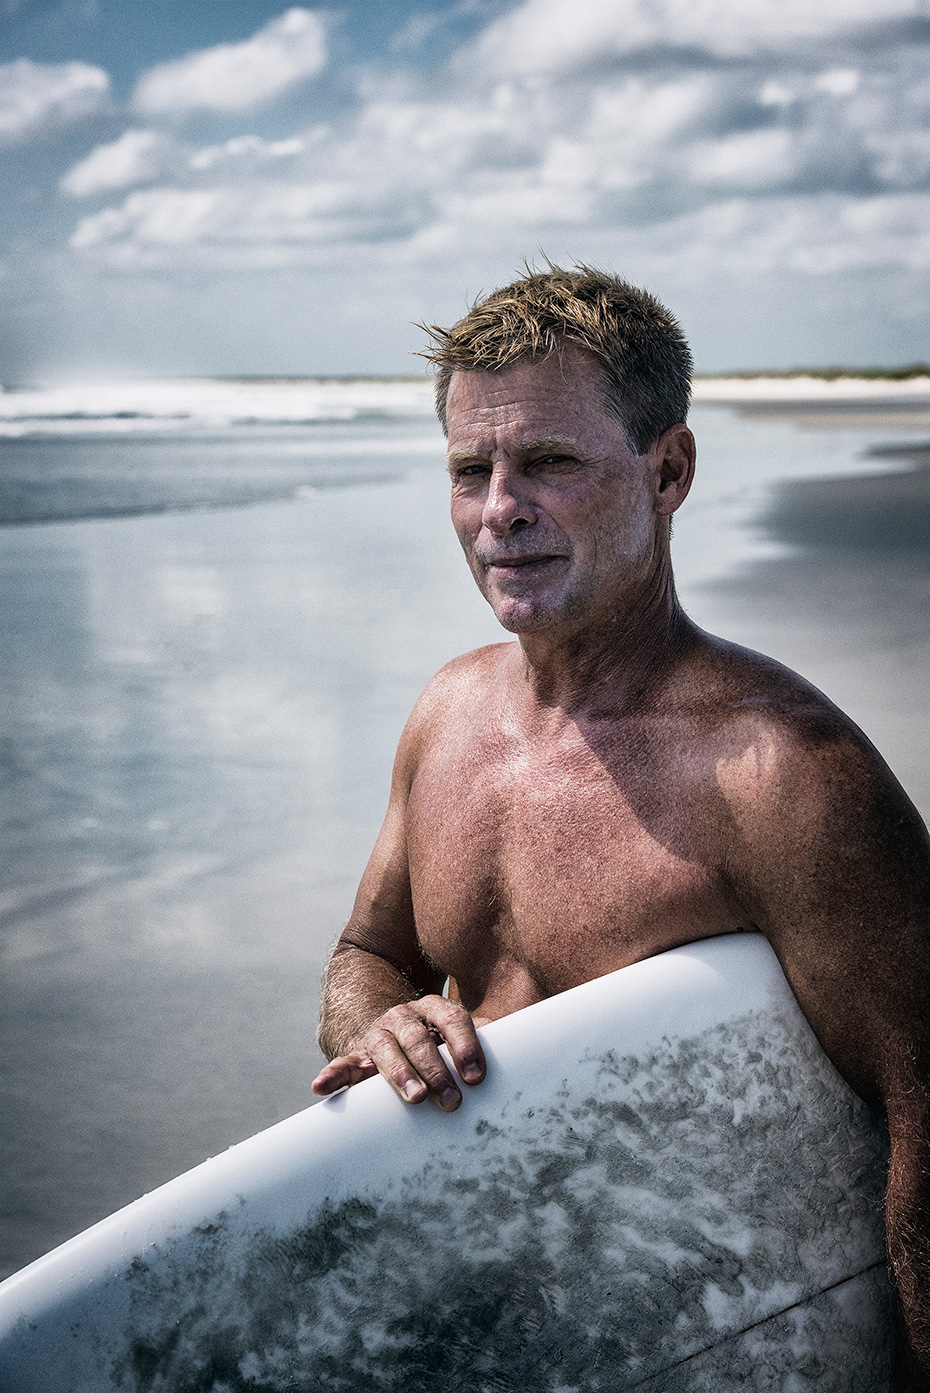 Surfers_28_robgregoryphotography